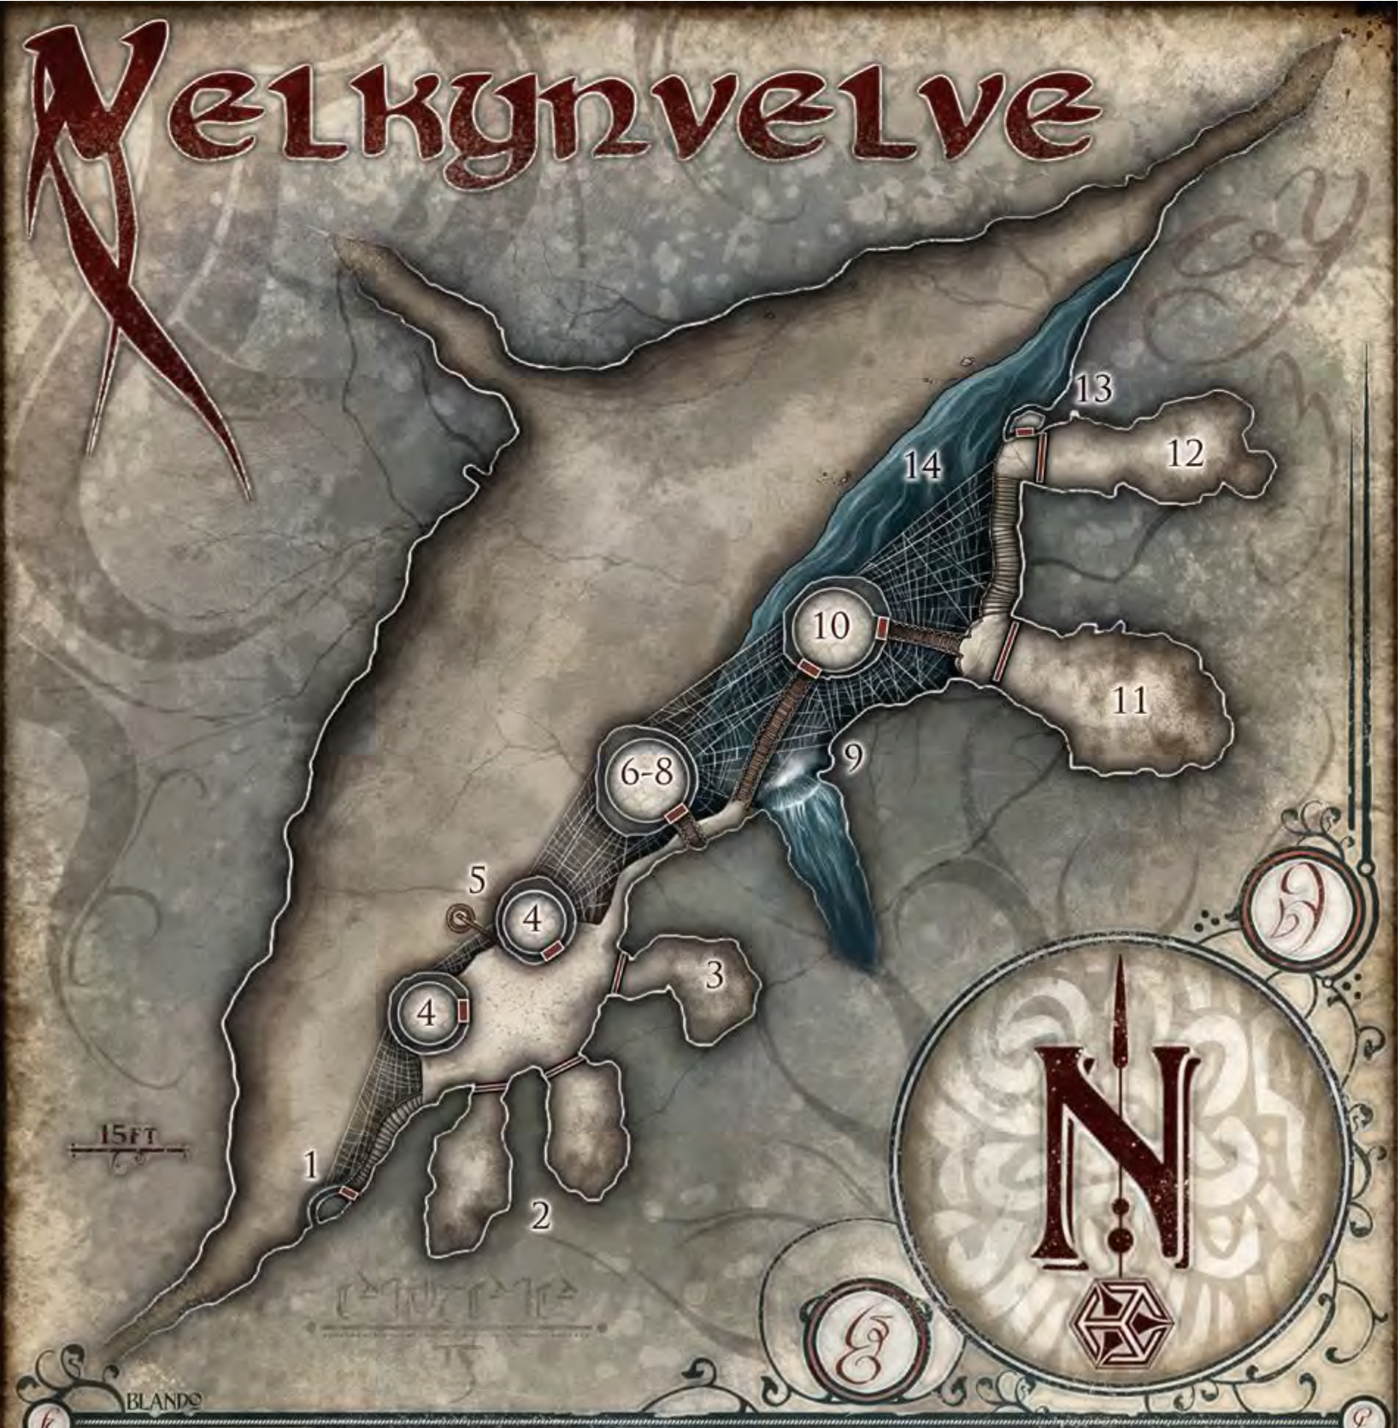 Pin by dudethree   on D&D   Map, D&d, Board games